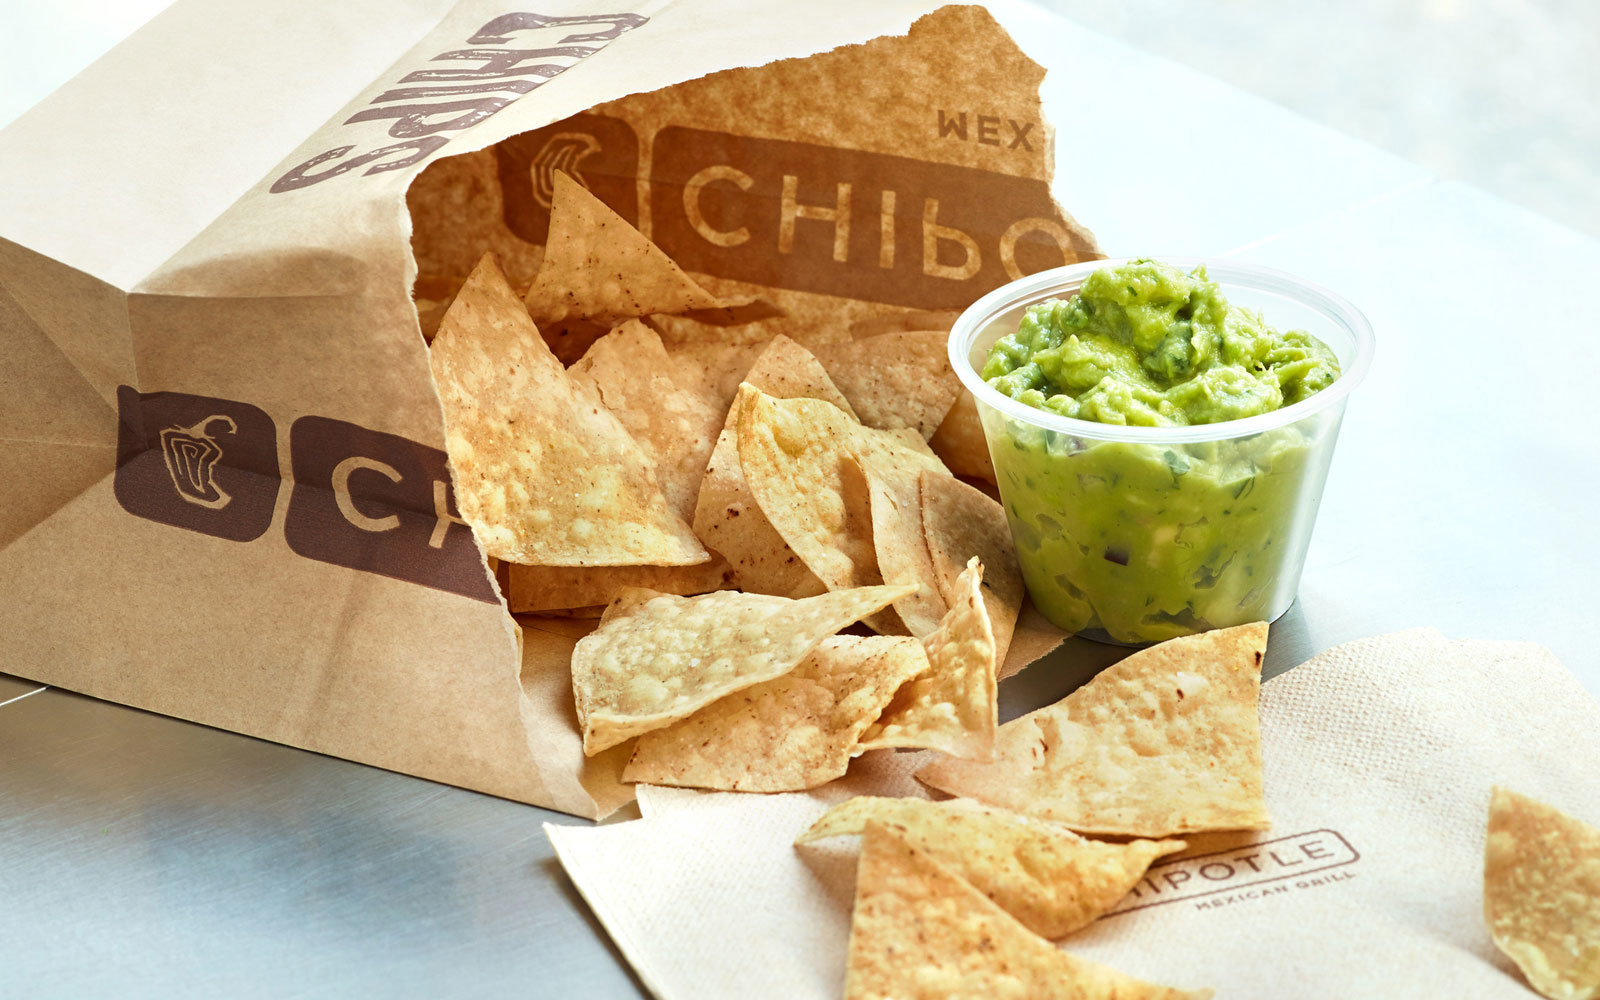 Chipotle is giving away free chips and guacamole this week